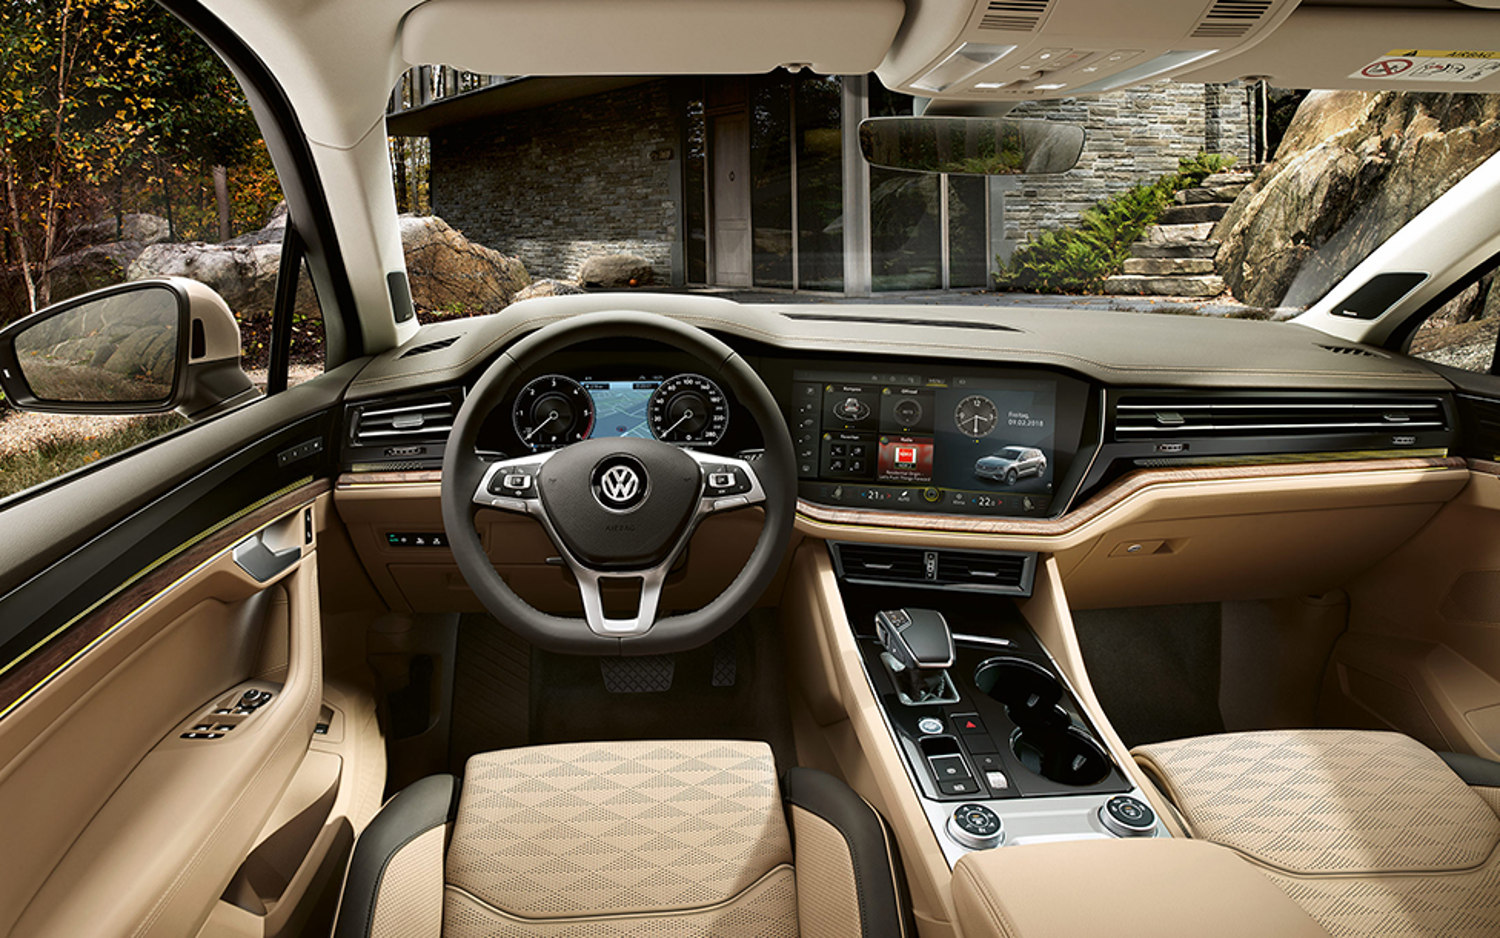 Image Result For Vw Touareg Interior Exterior And Review